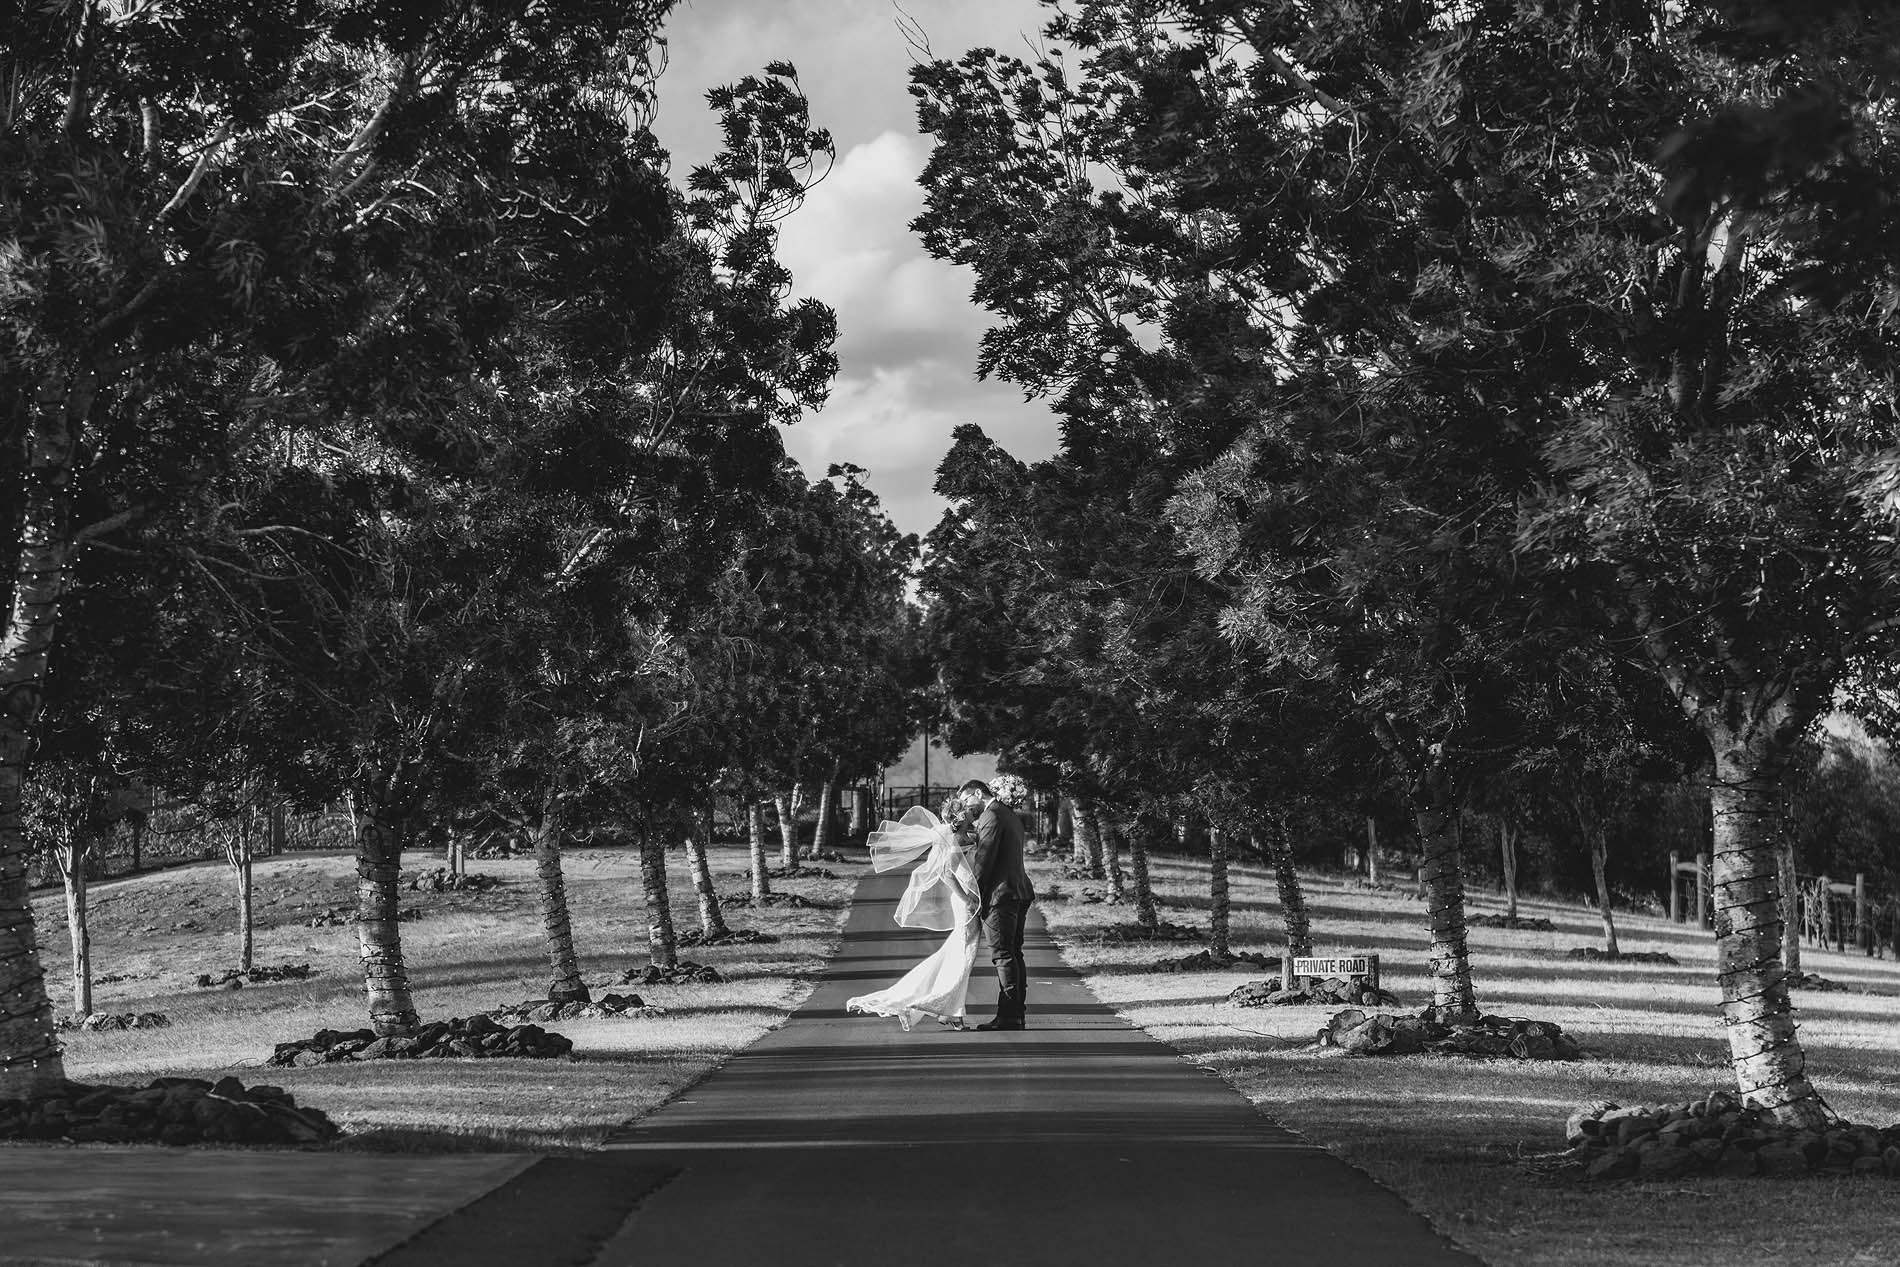 181206 0956bw preston peak wines winery functions private road dramatic emotive lane couple wedding